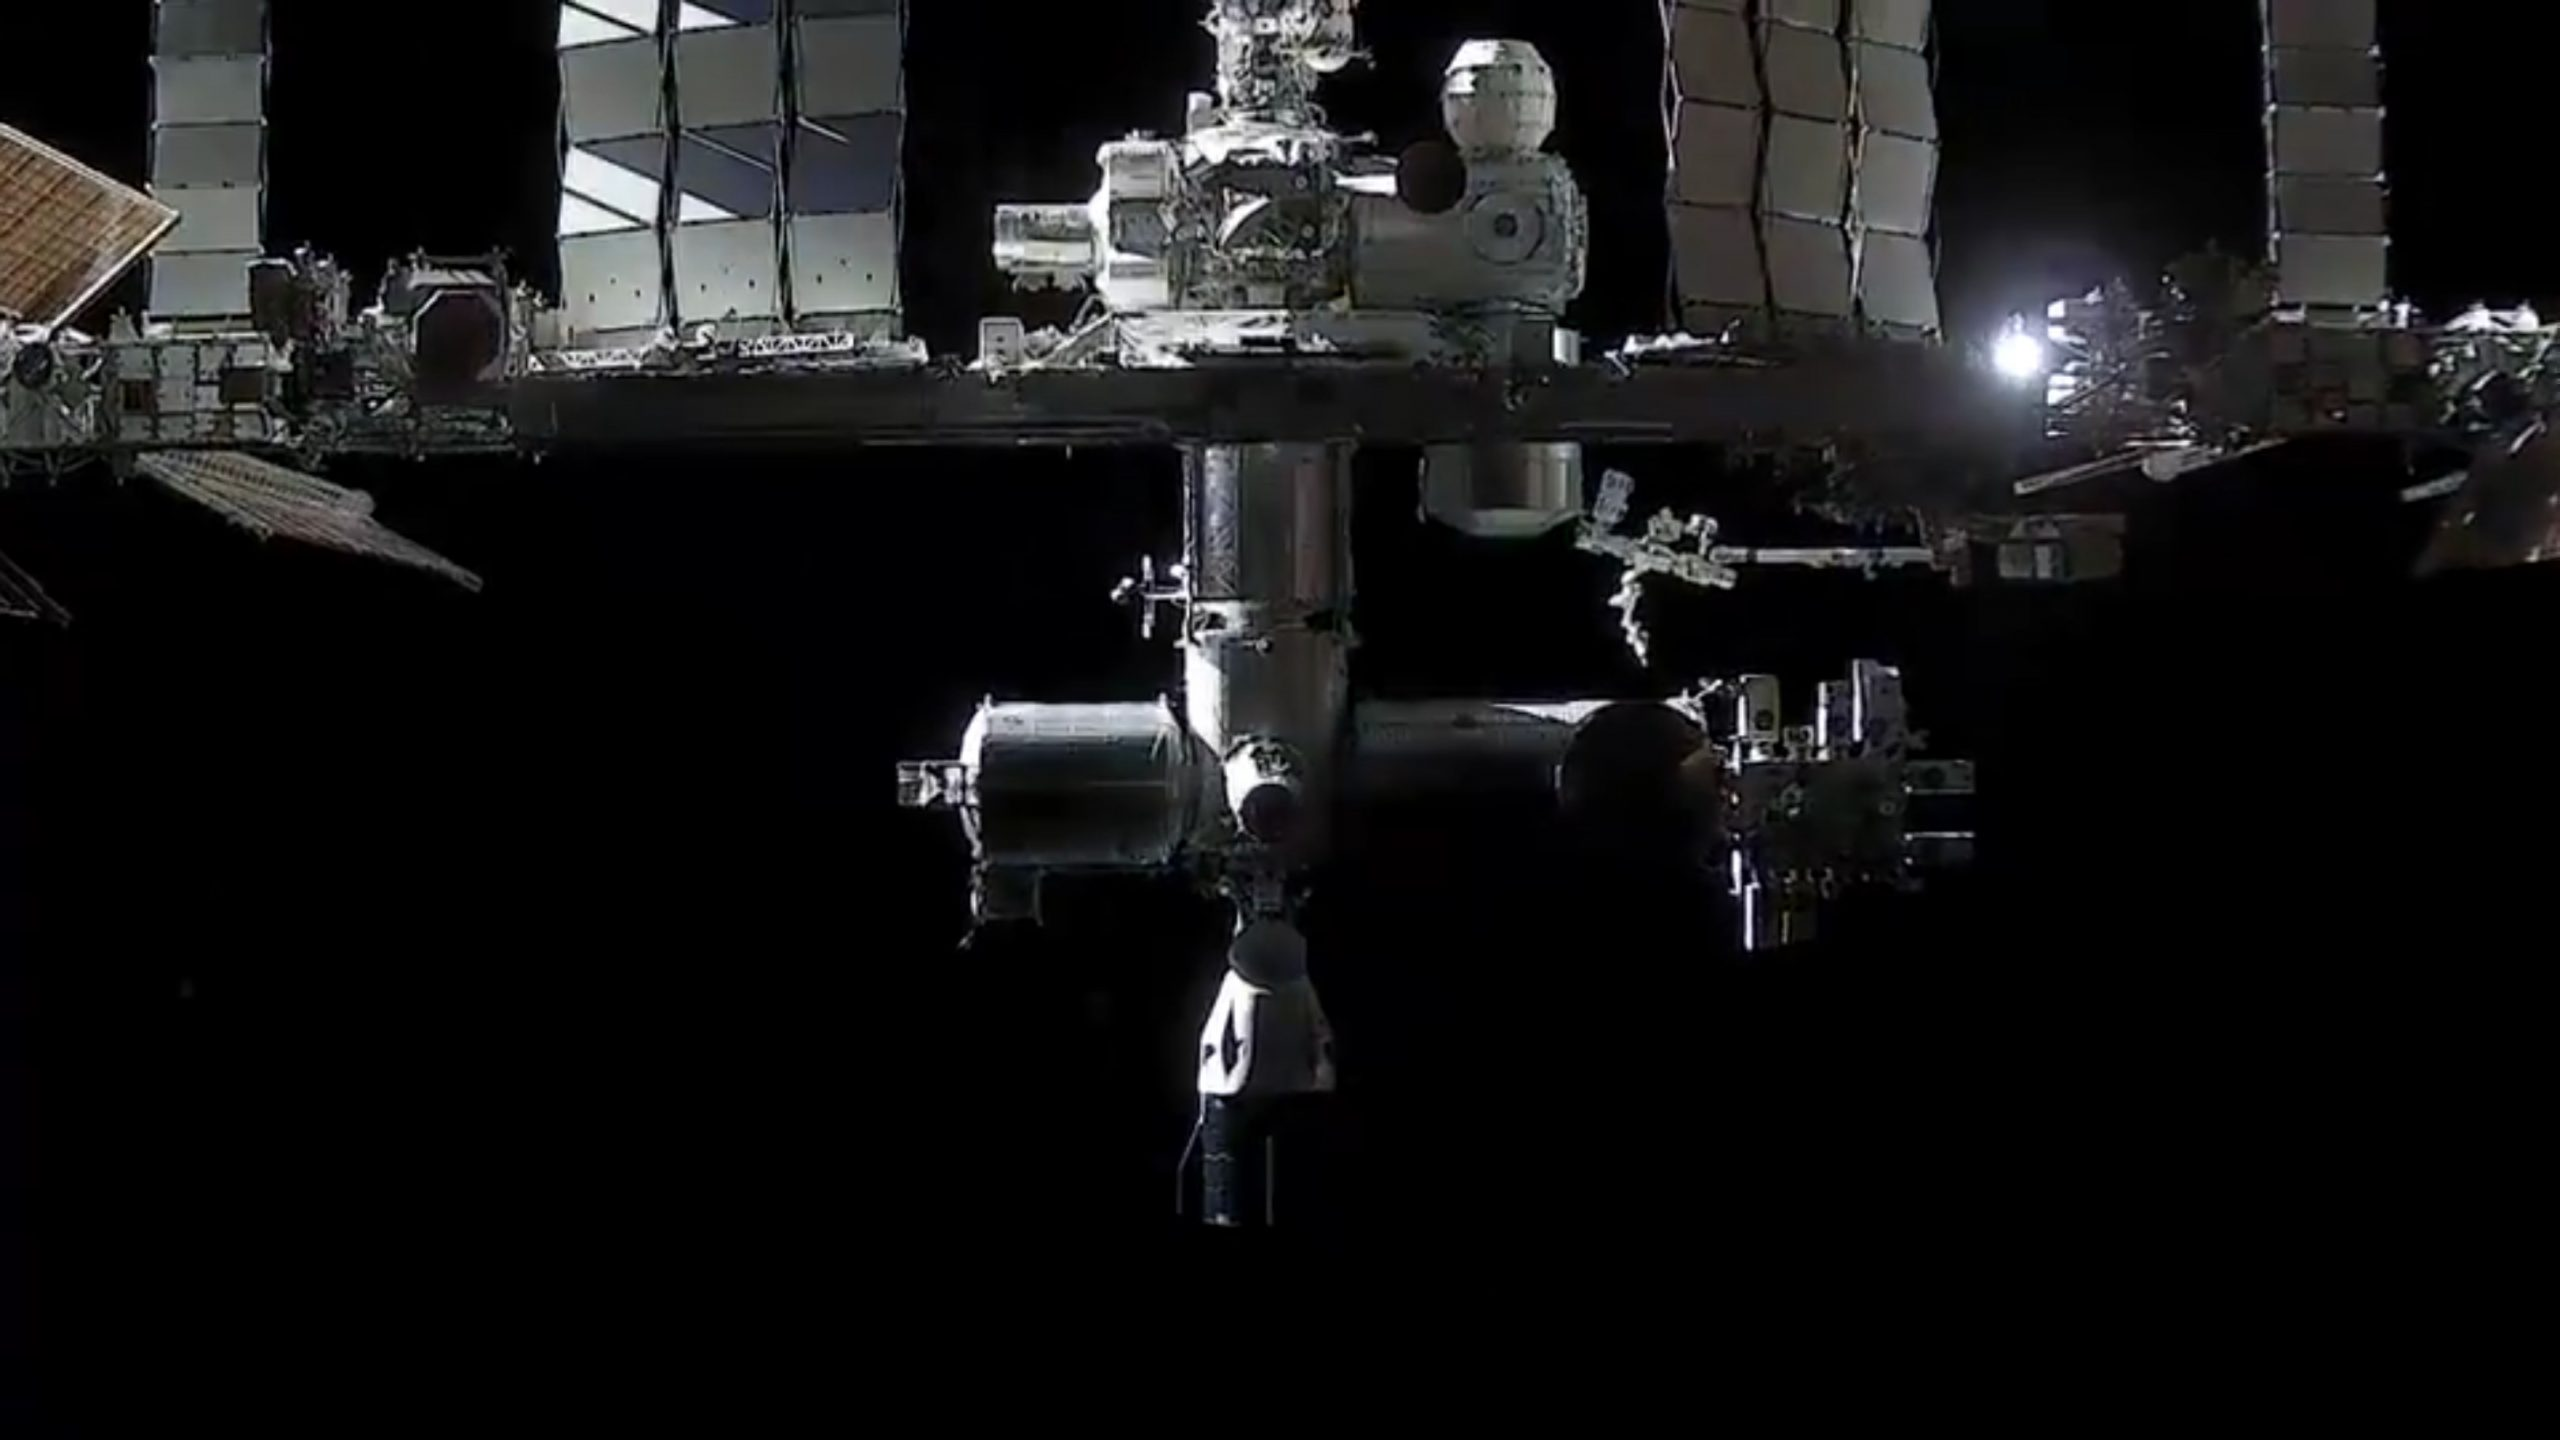 CRS-21 Cargo Dragon 2 120720 (SpaceX) ISS docking onboard view + C207 5